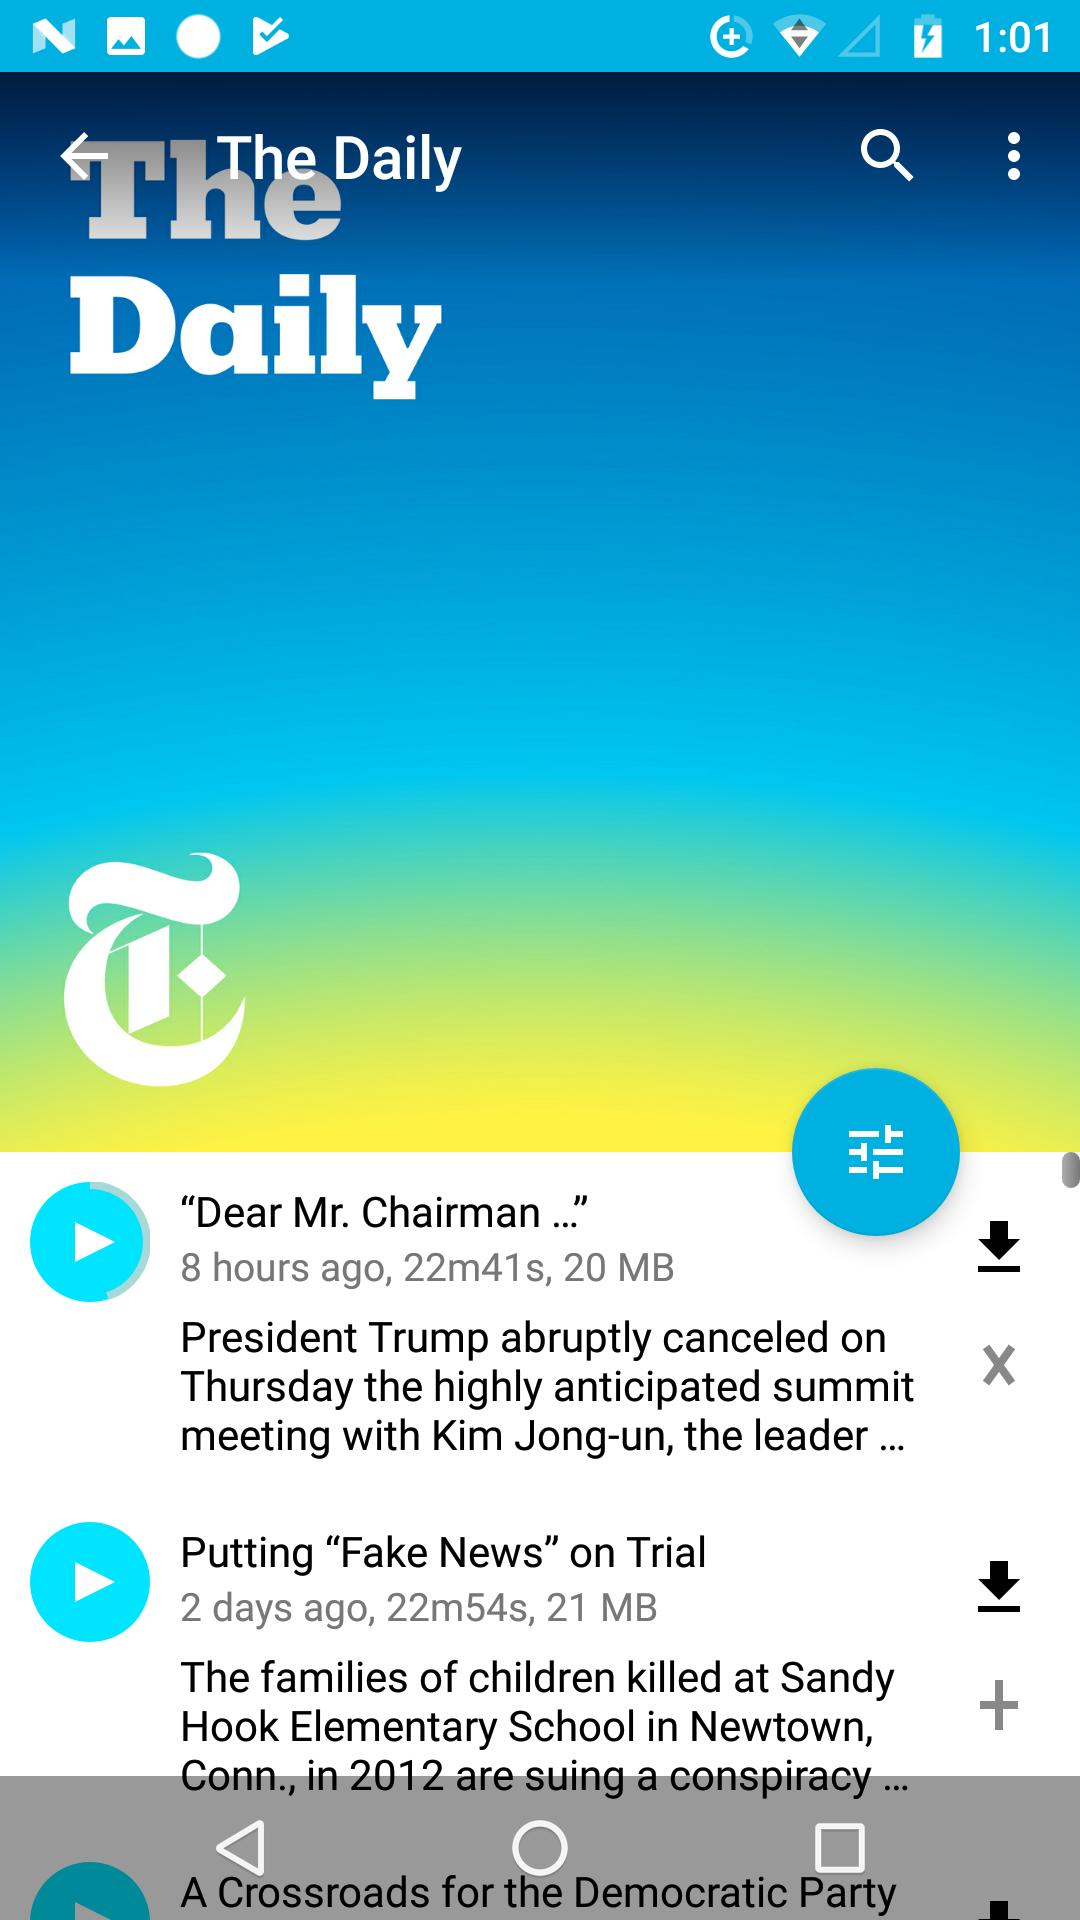 The Daily Podcast (TDPCast) for Android - APK Download